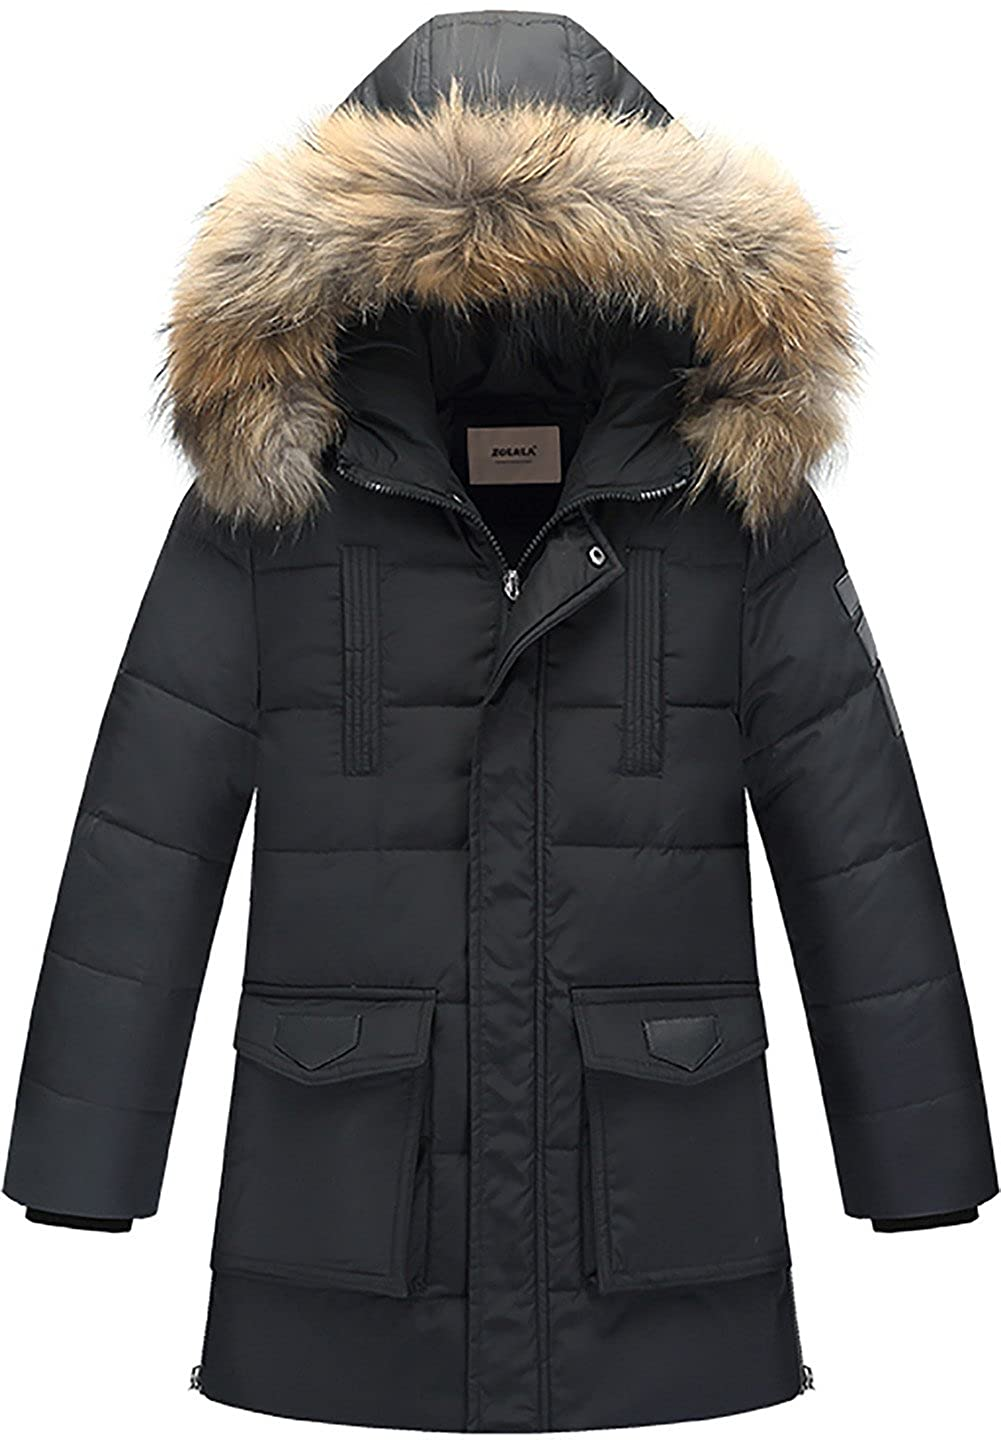 ZOEREA Boys Warm Down Jacket Kids Winter Coat Hooded Thicken Outfits Packable Light Weight Coats Clothes